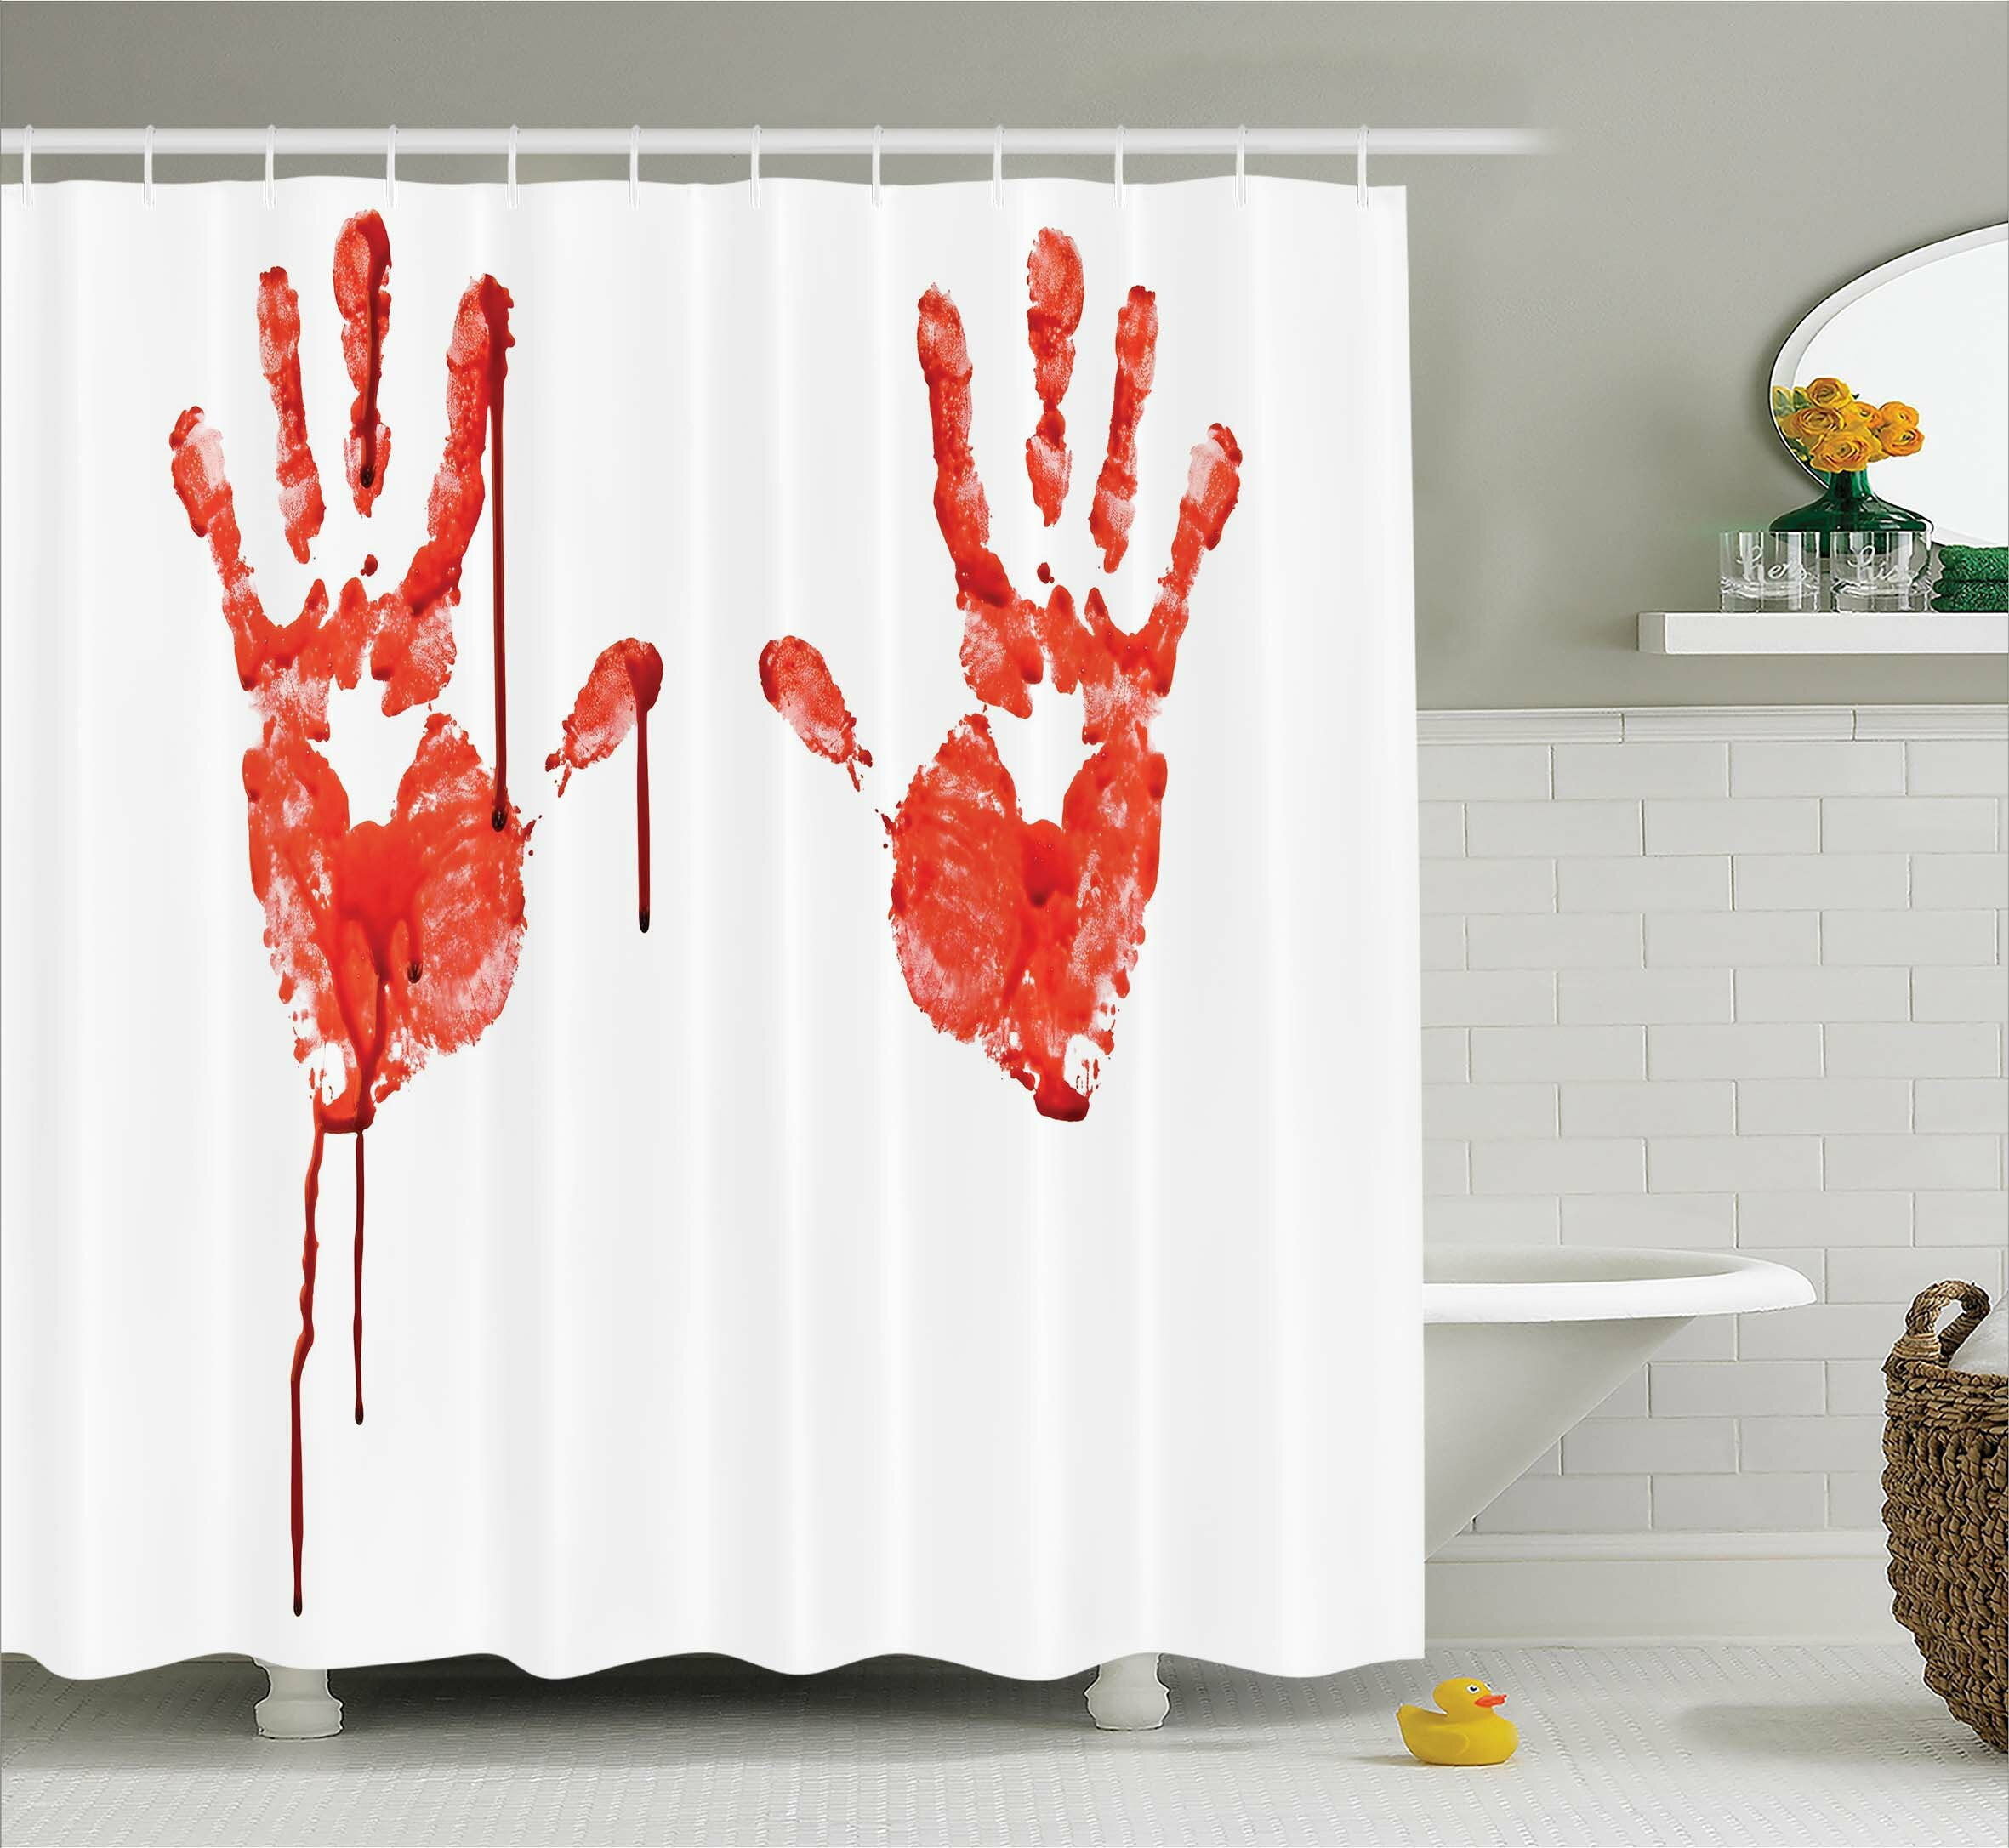 Ambesonne Bloody Help Me Horror Scary Shower Curtain